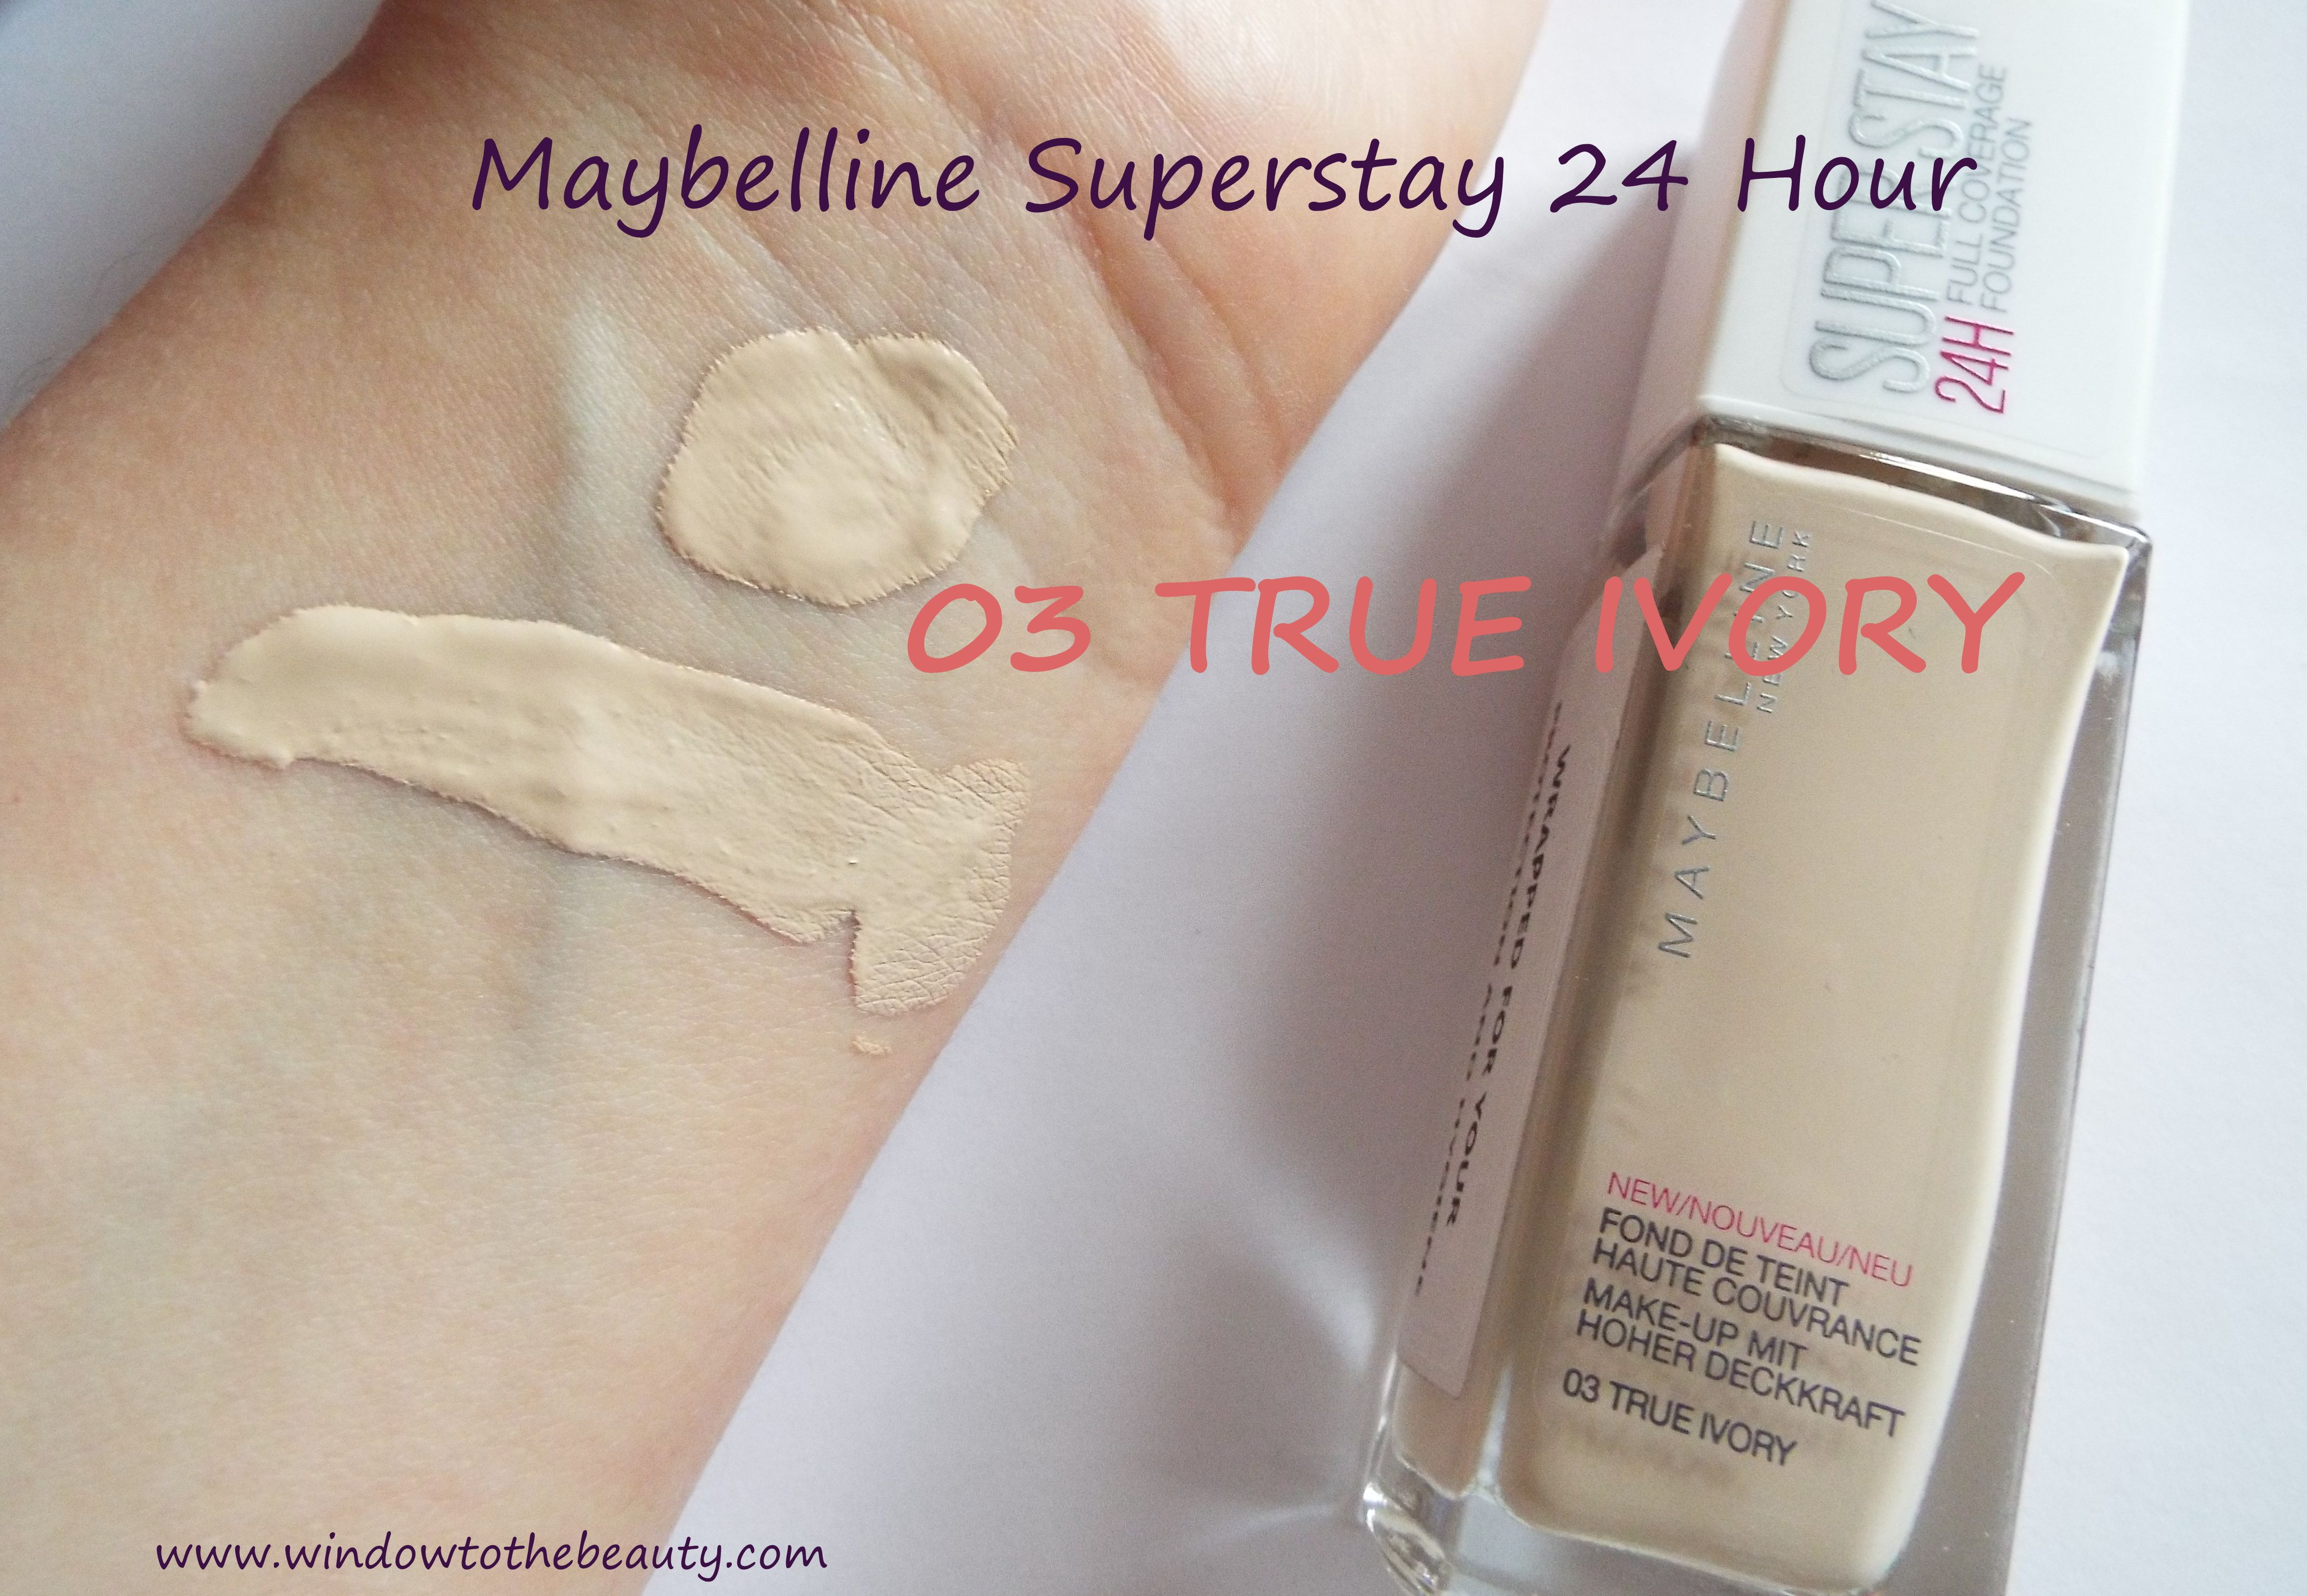 78aafb36bc1 Maybelline Superstay 24 Hour Foundation 03 True Ivory swatch ...